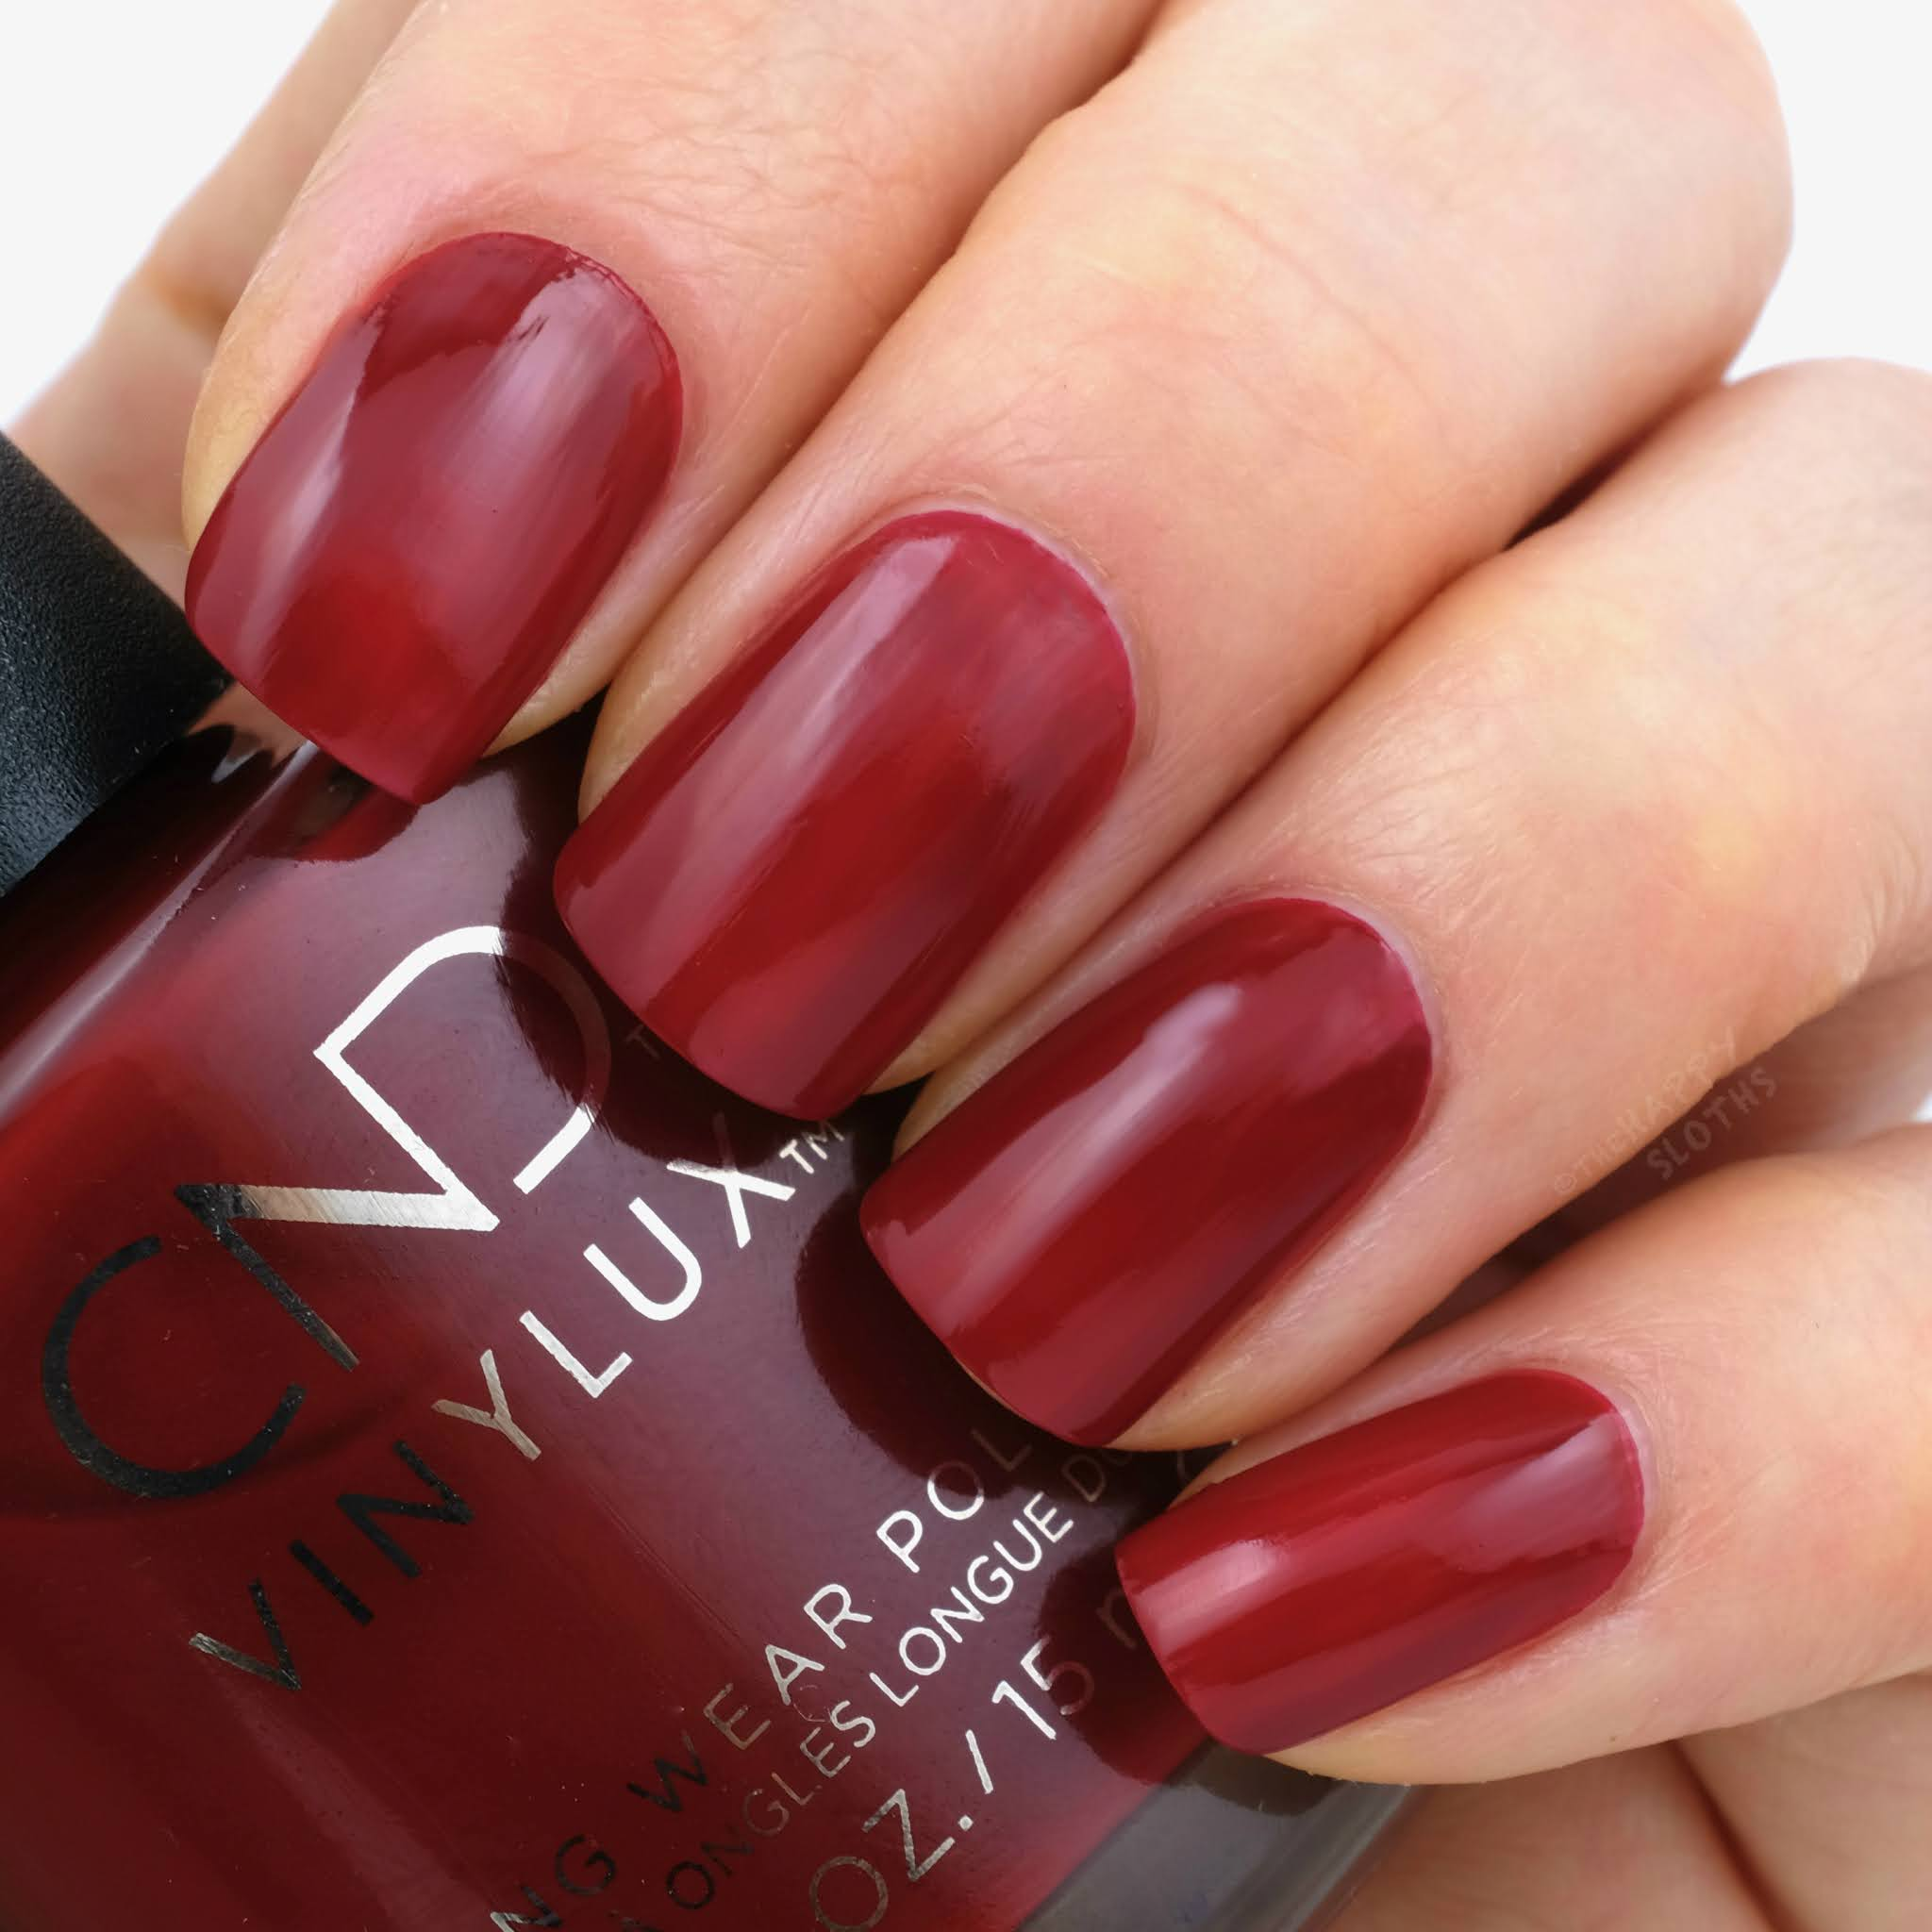 CND | Holiday 2020 Cocktail Couture Collection | Bordeaux Babe: Review and Swatches